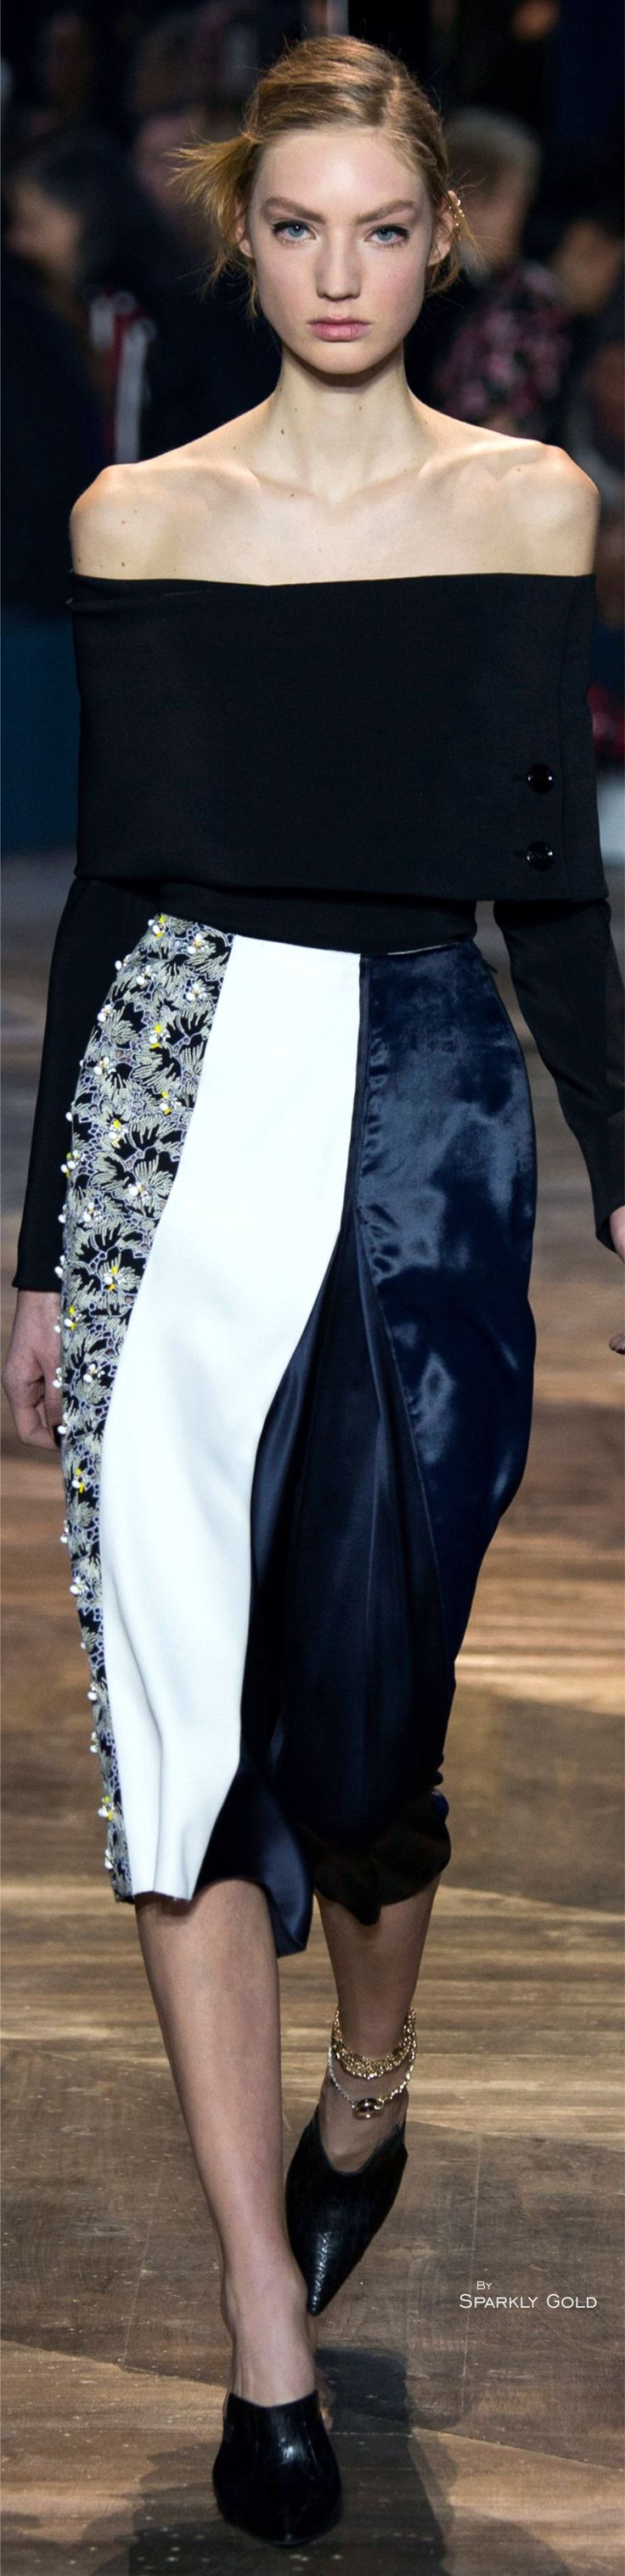 Christian Dior Spring 2016 Couture